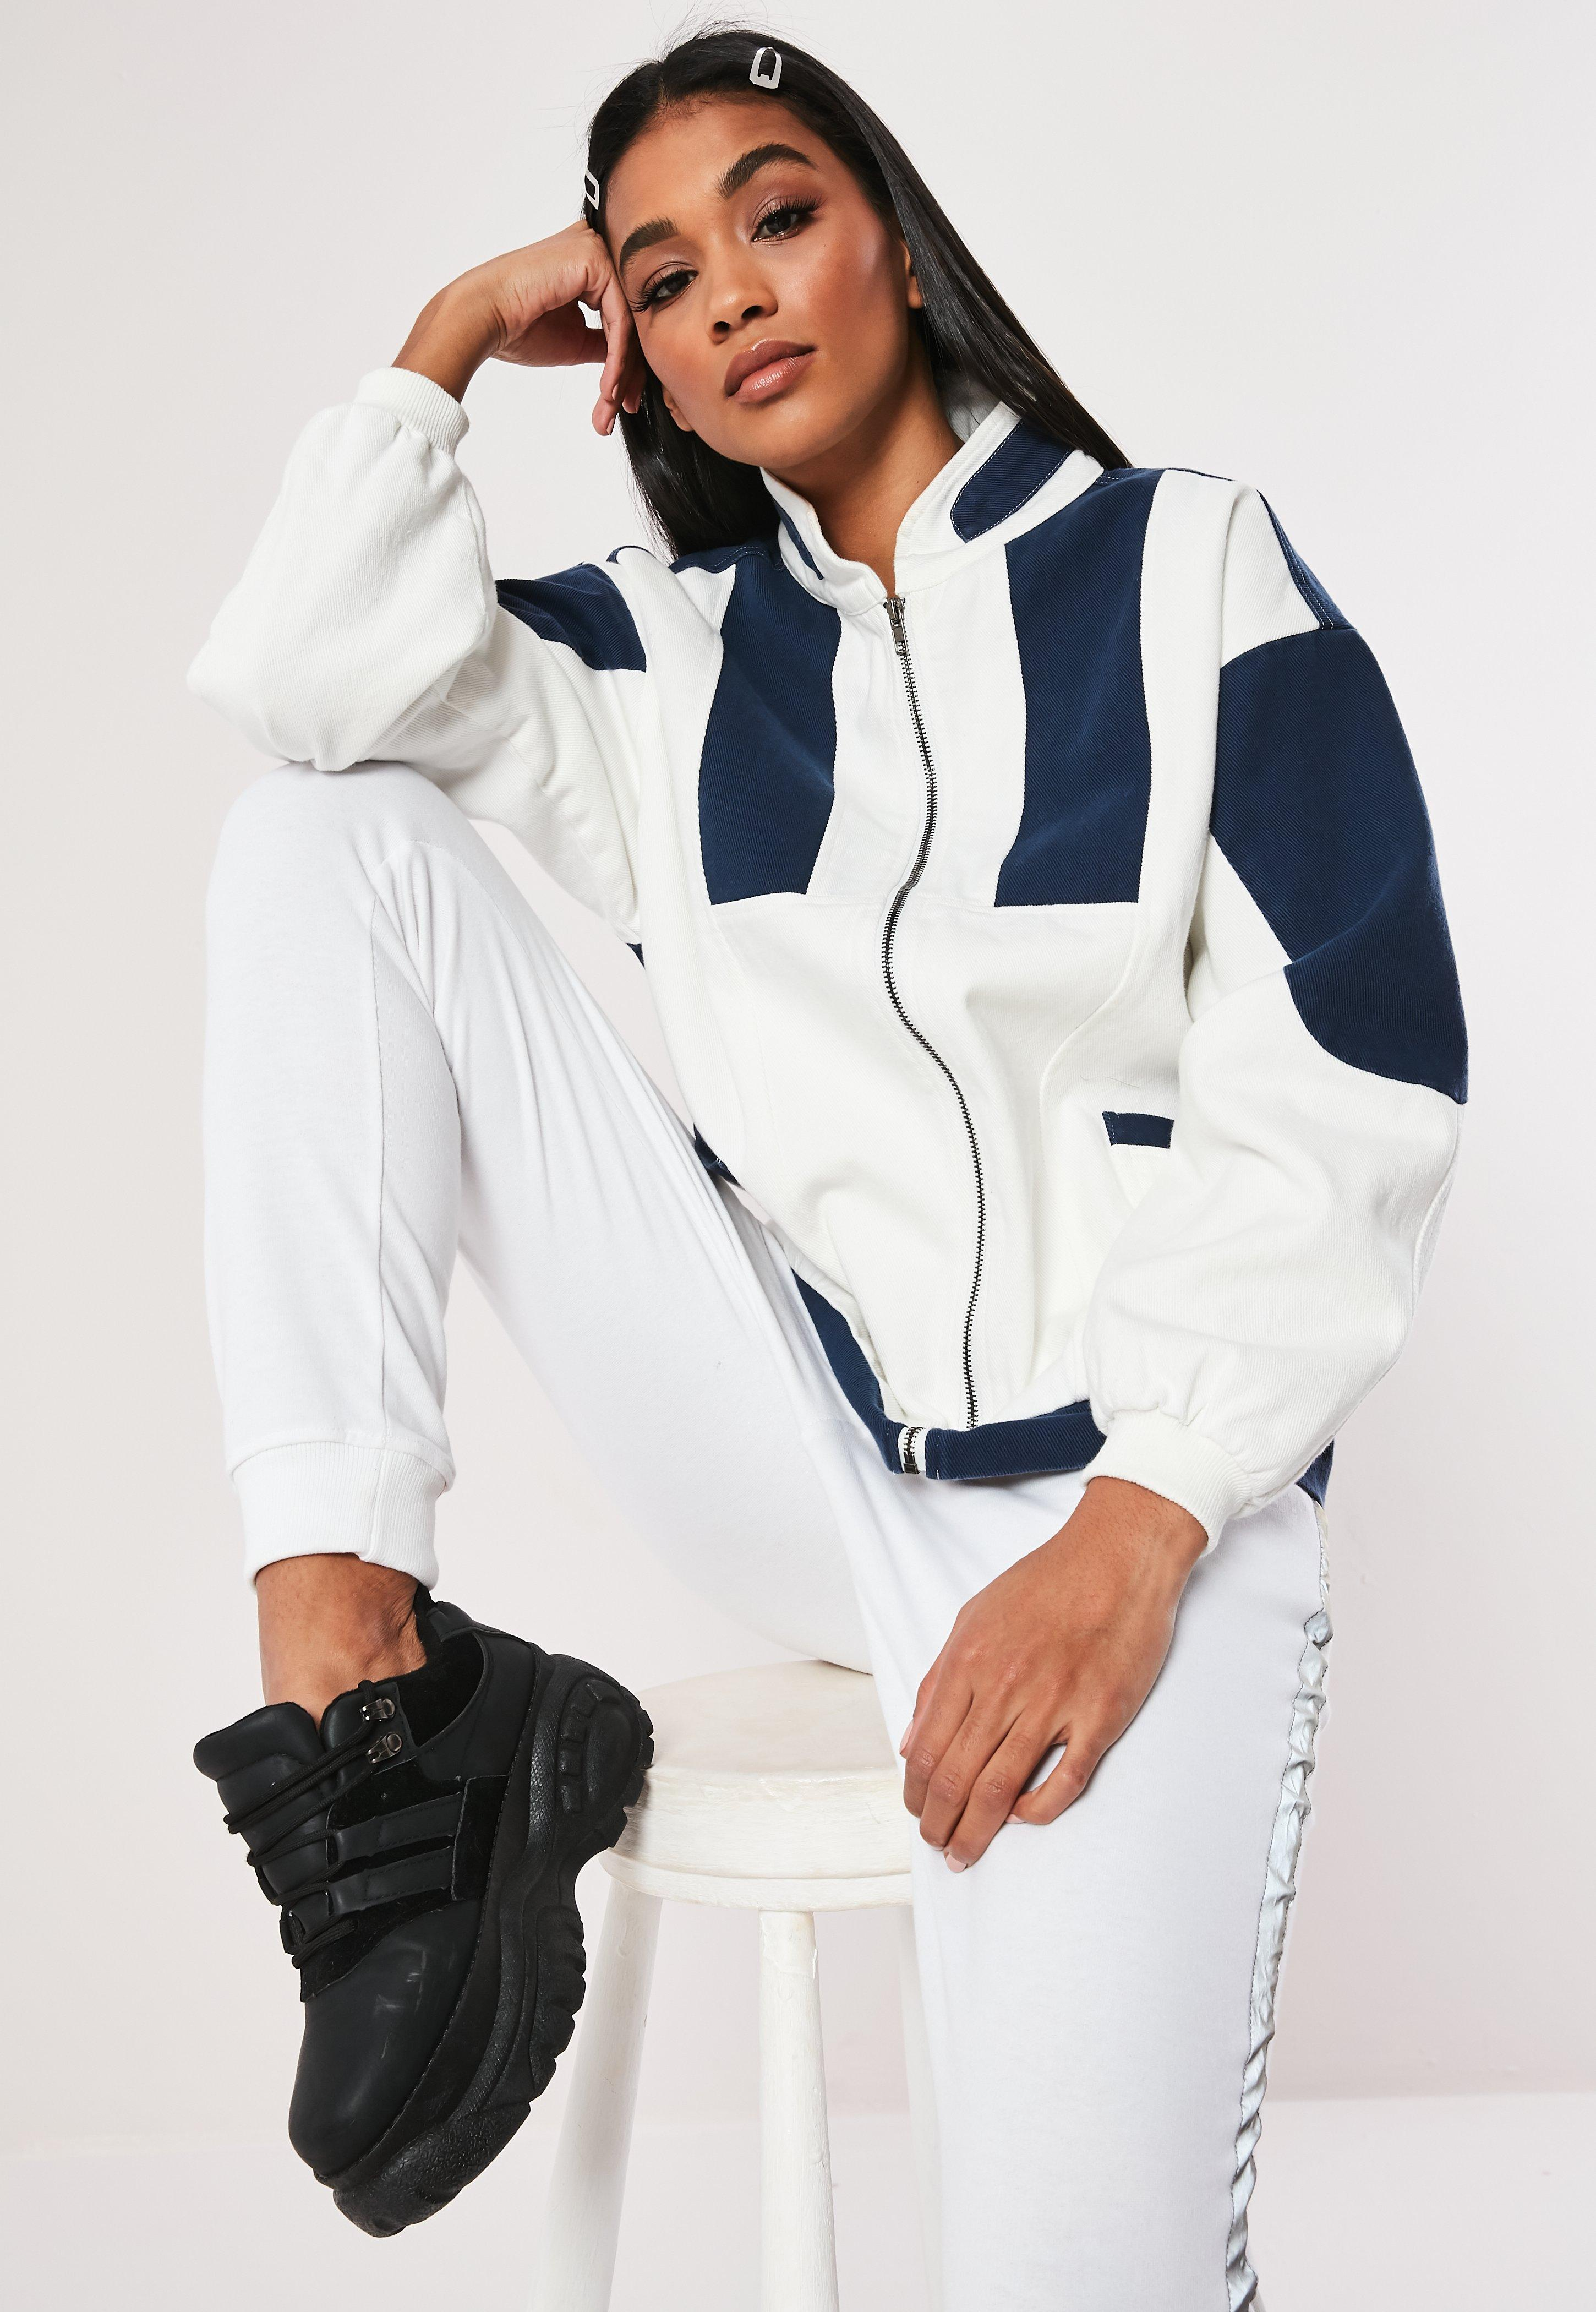 76ba2042a1 White Coats Jackets | Women's White Coats Jackets Online - Missguided